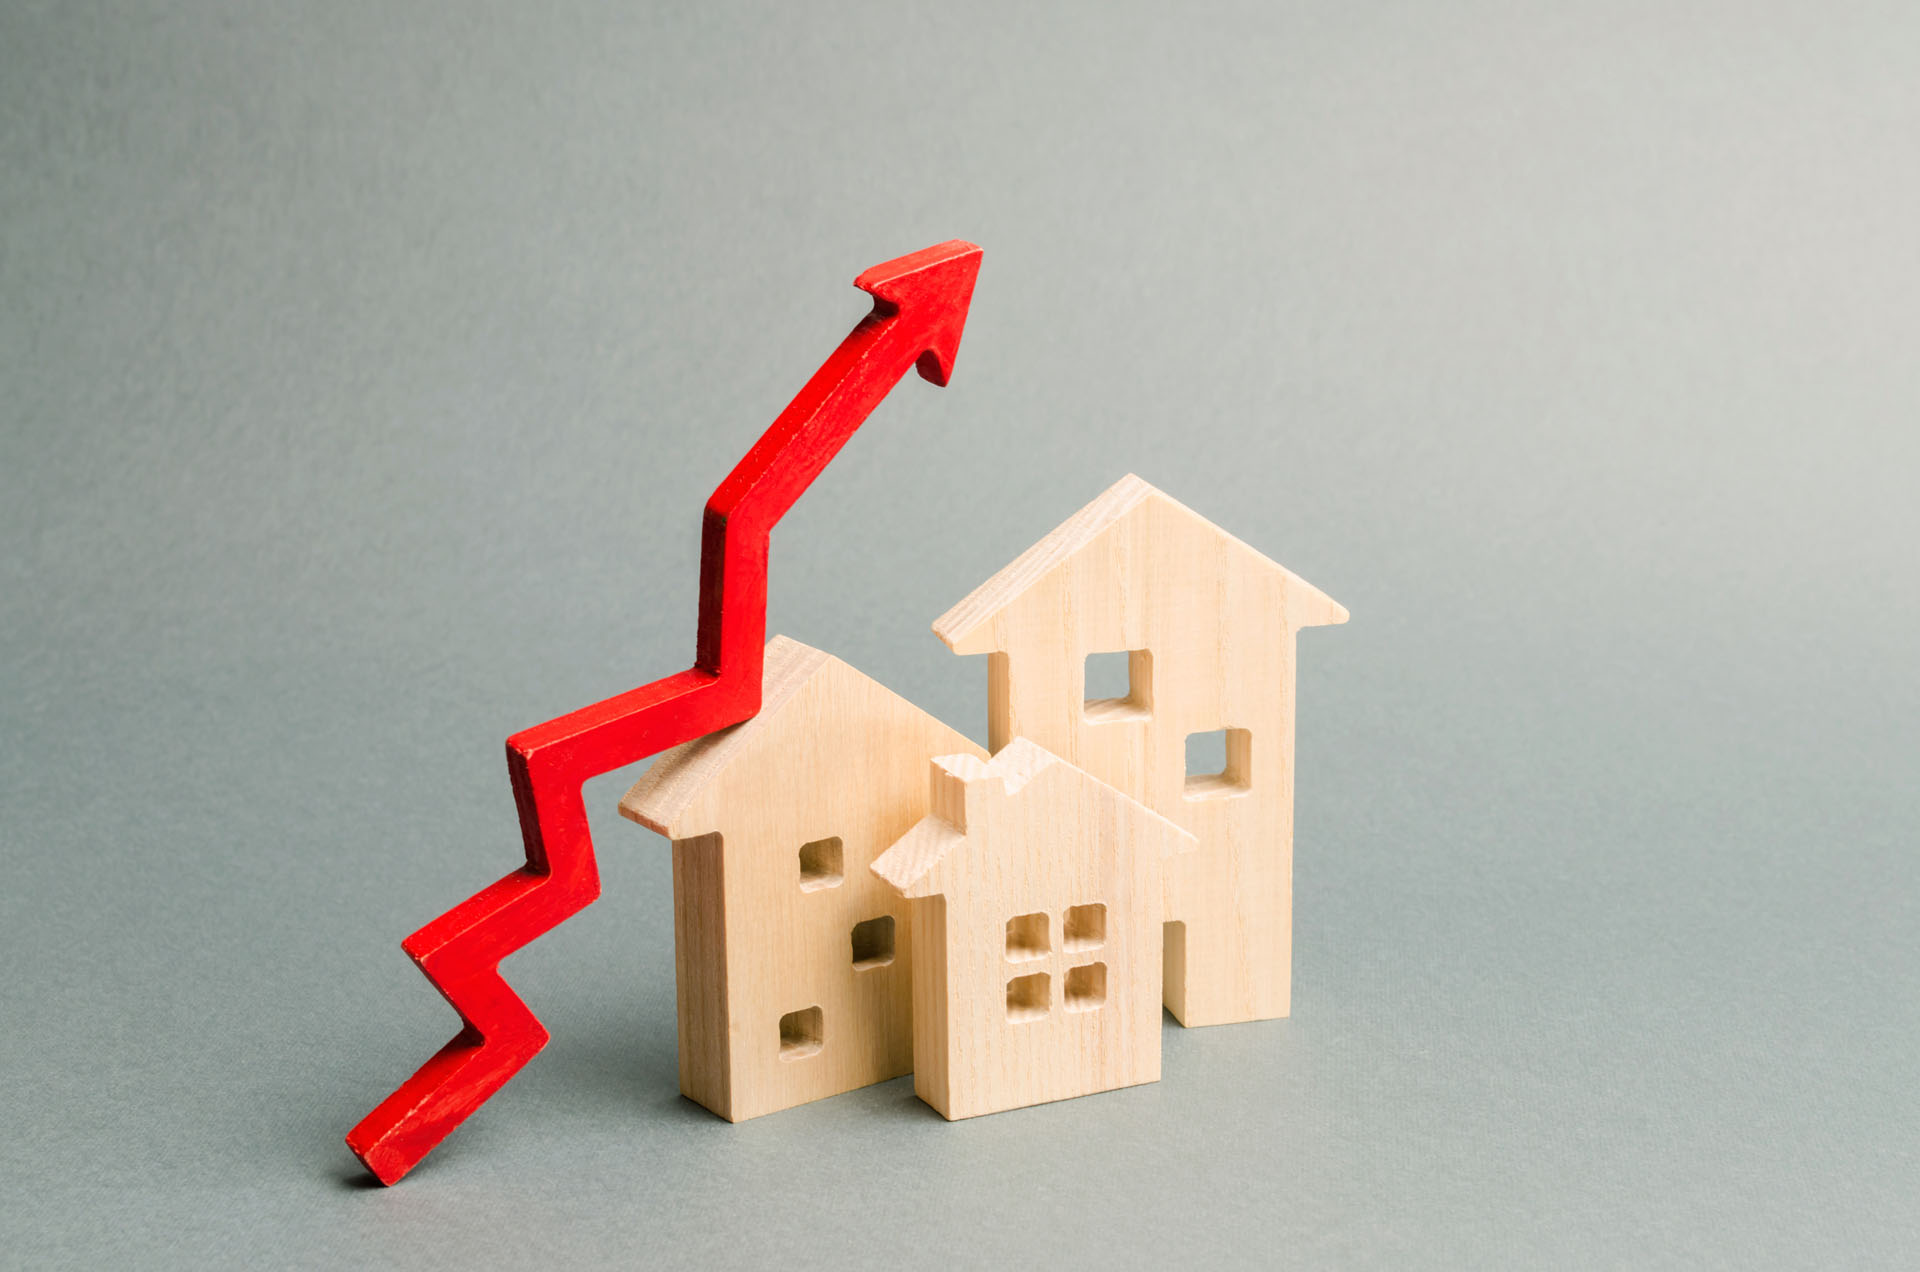 Miniature Wooden Houses And Red Arrow Up Population